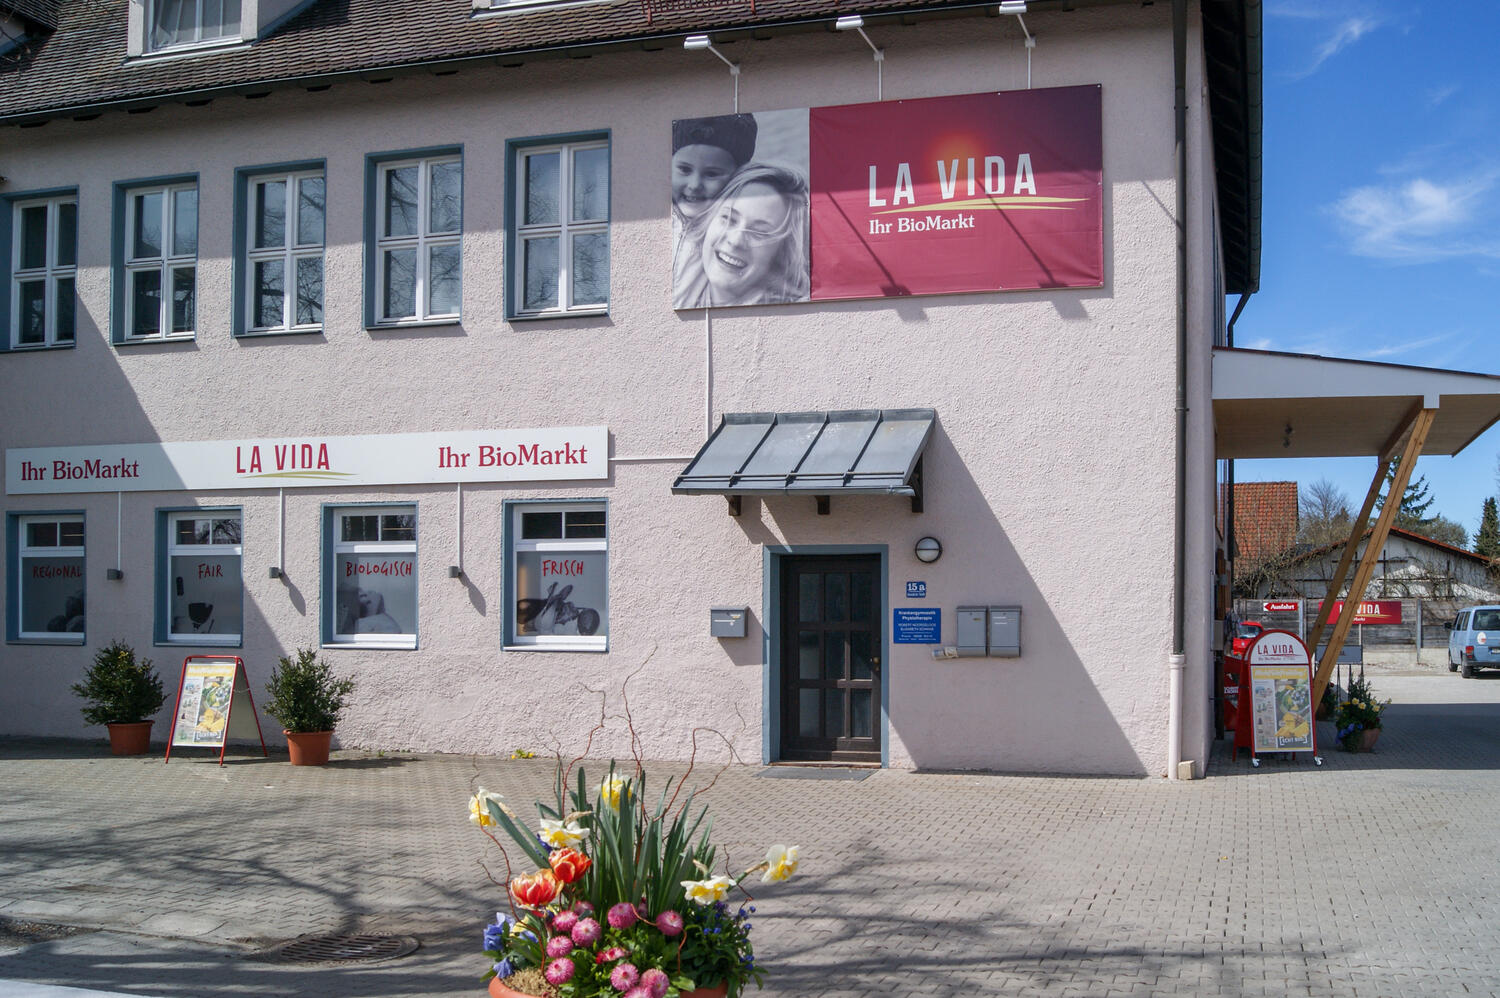 Bio-Supermarkt in Utting am Ammersee